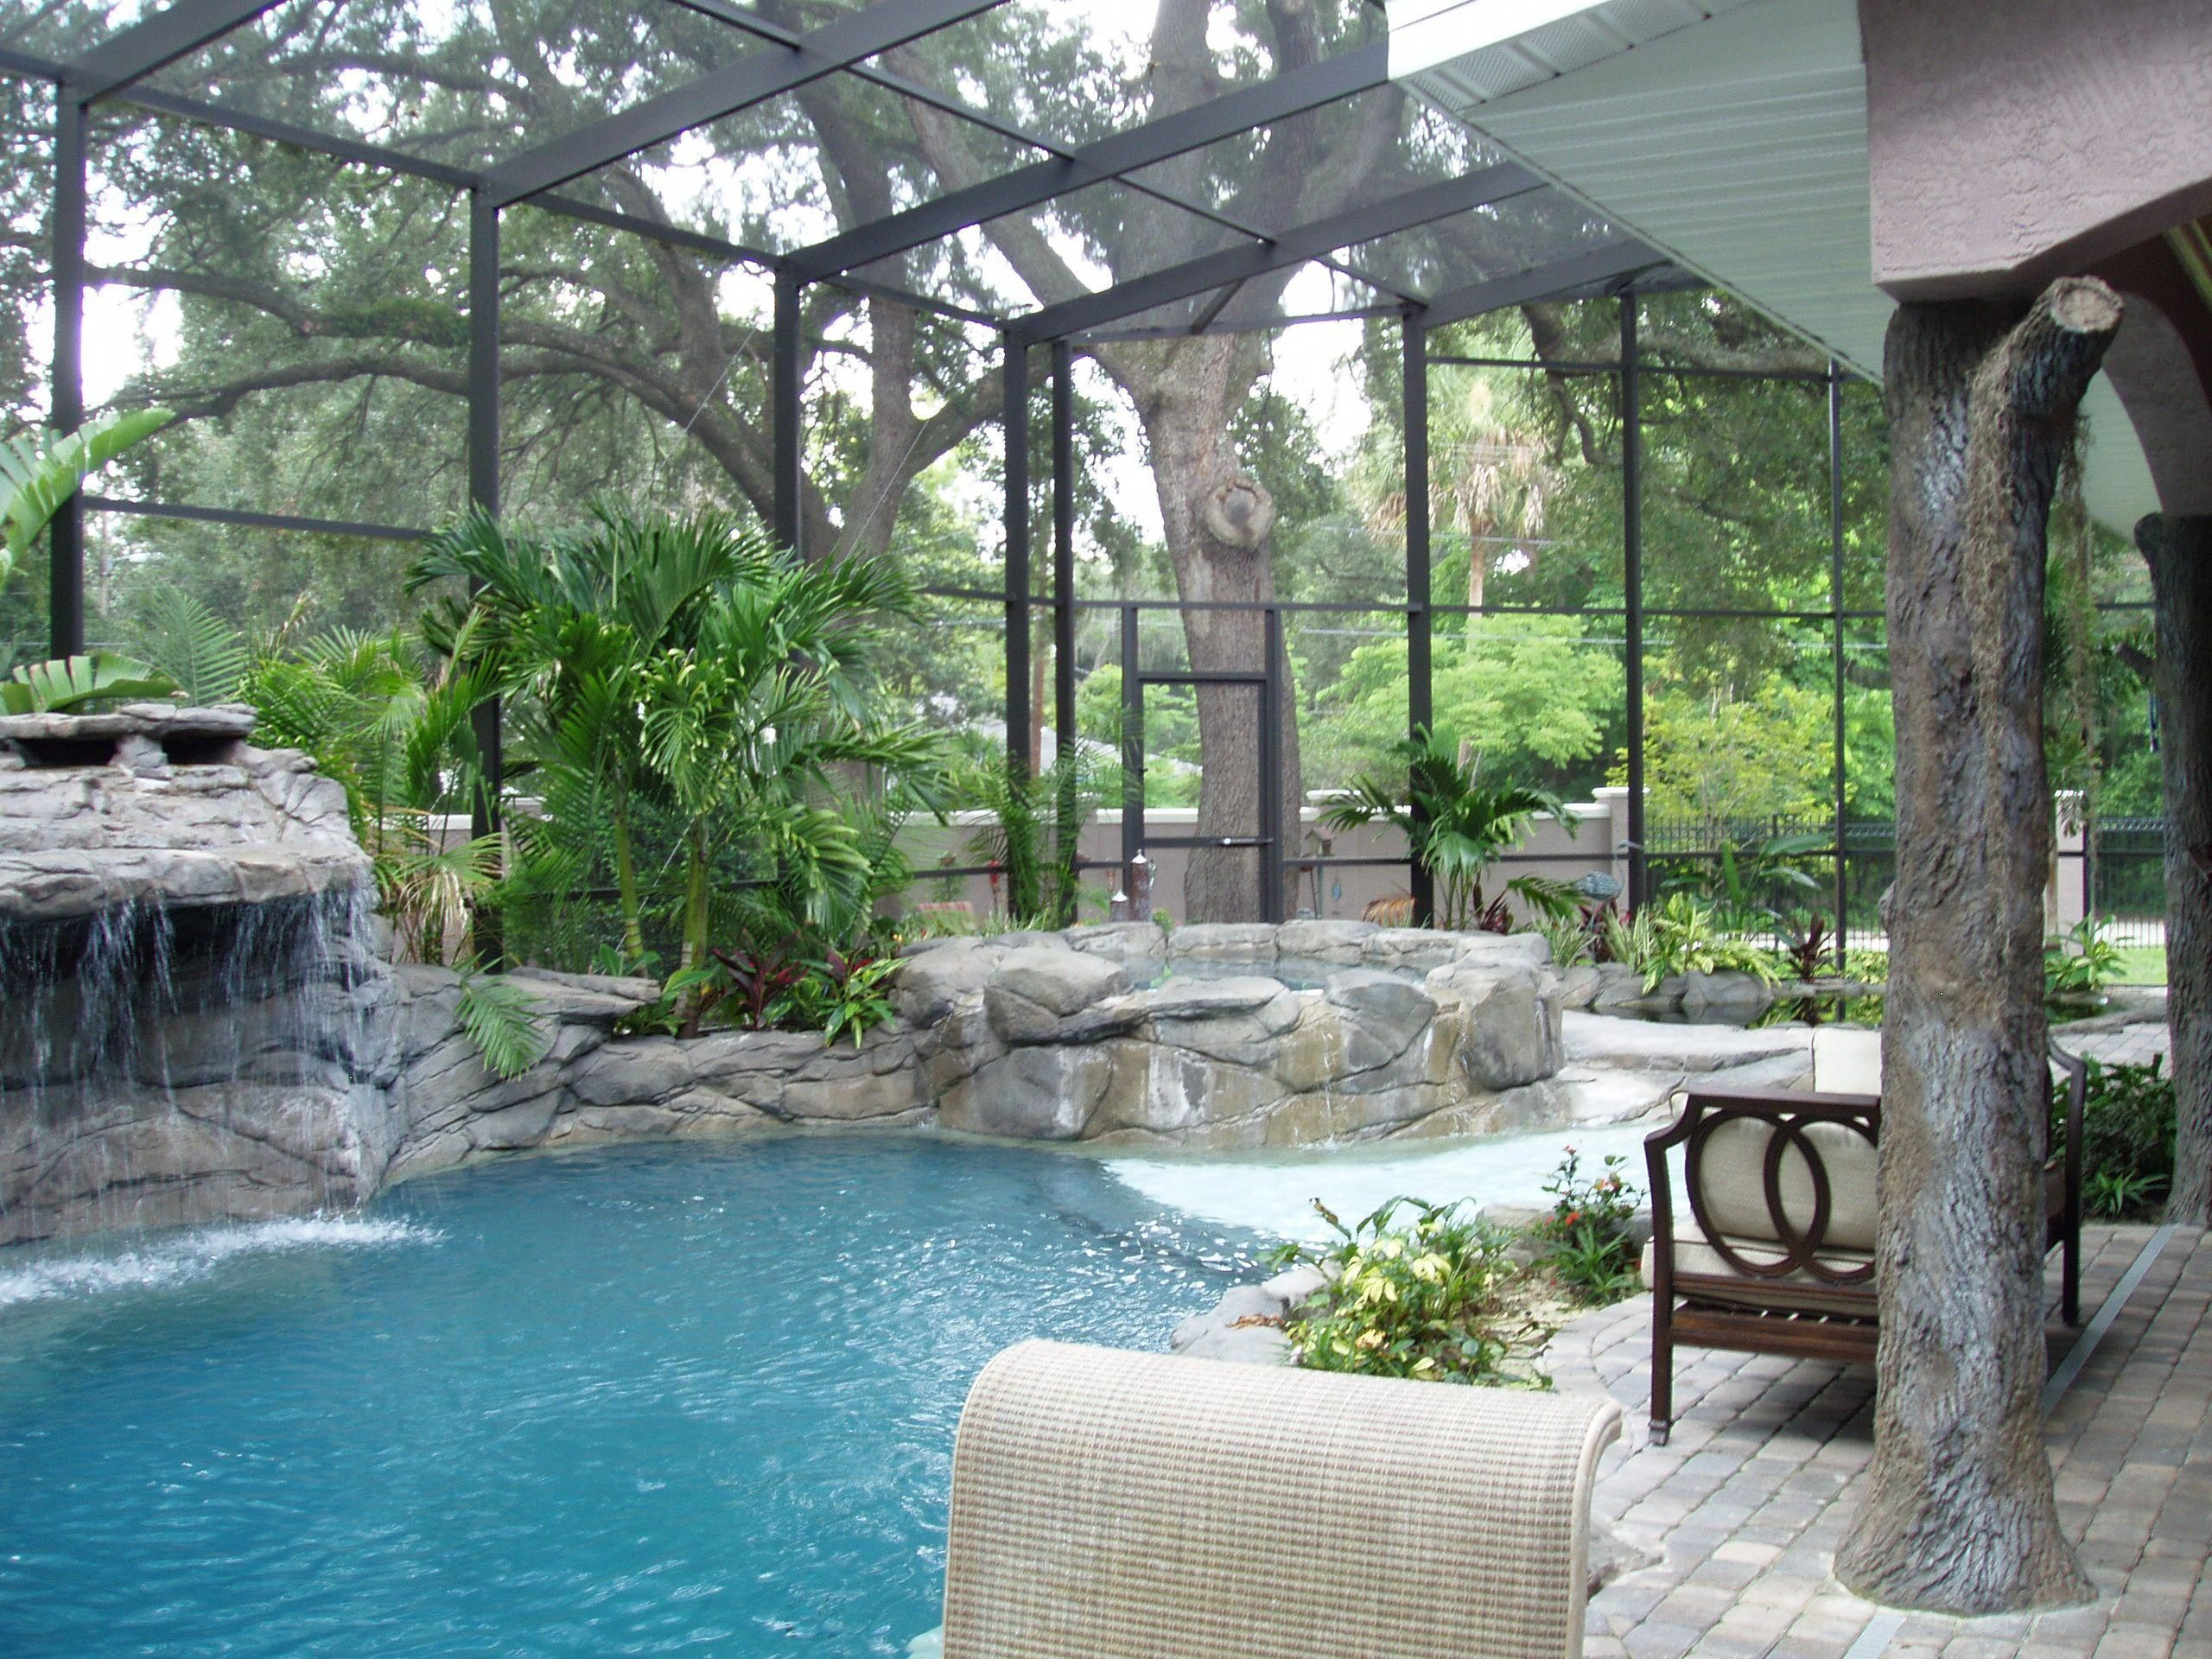 Beach Entry Pool Faux Log Lanai Post And Waterfall With Rock Spa And Beach Entry All Enc Indoor Swimming Pool Design Backyard Pool Landscaping Beach Entry Pool